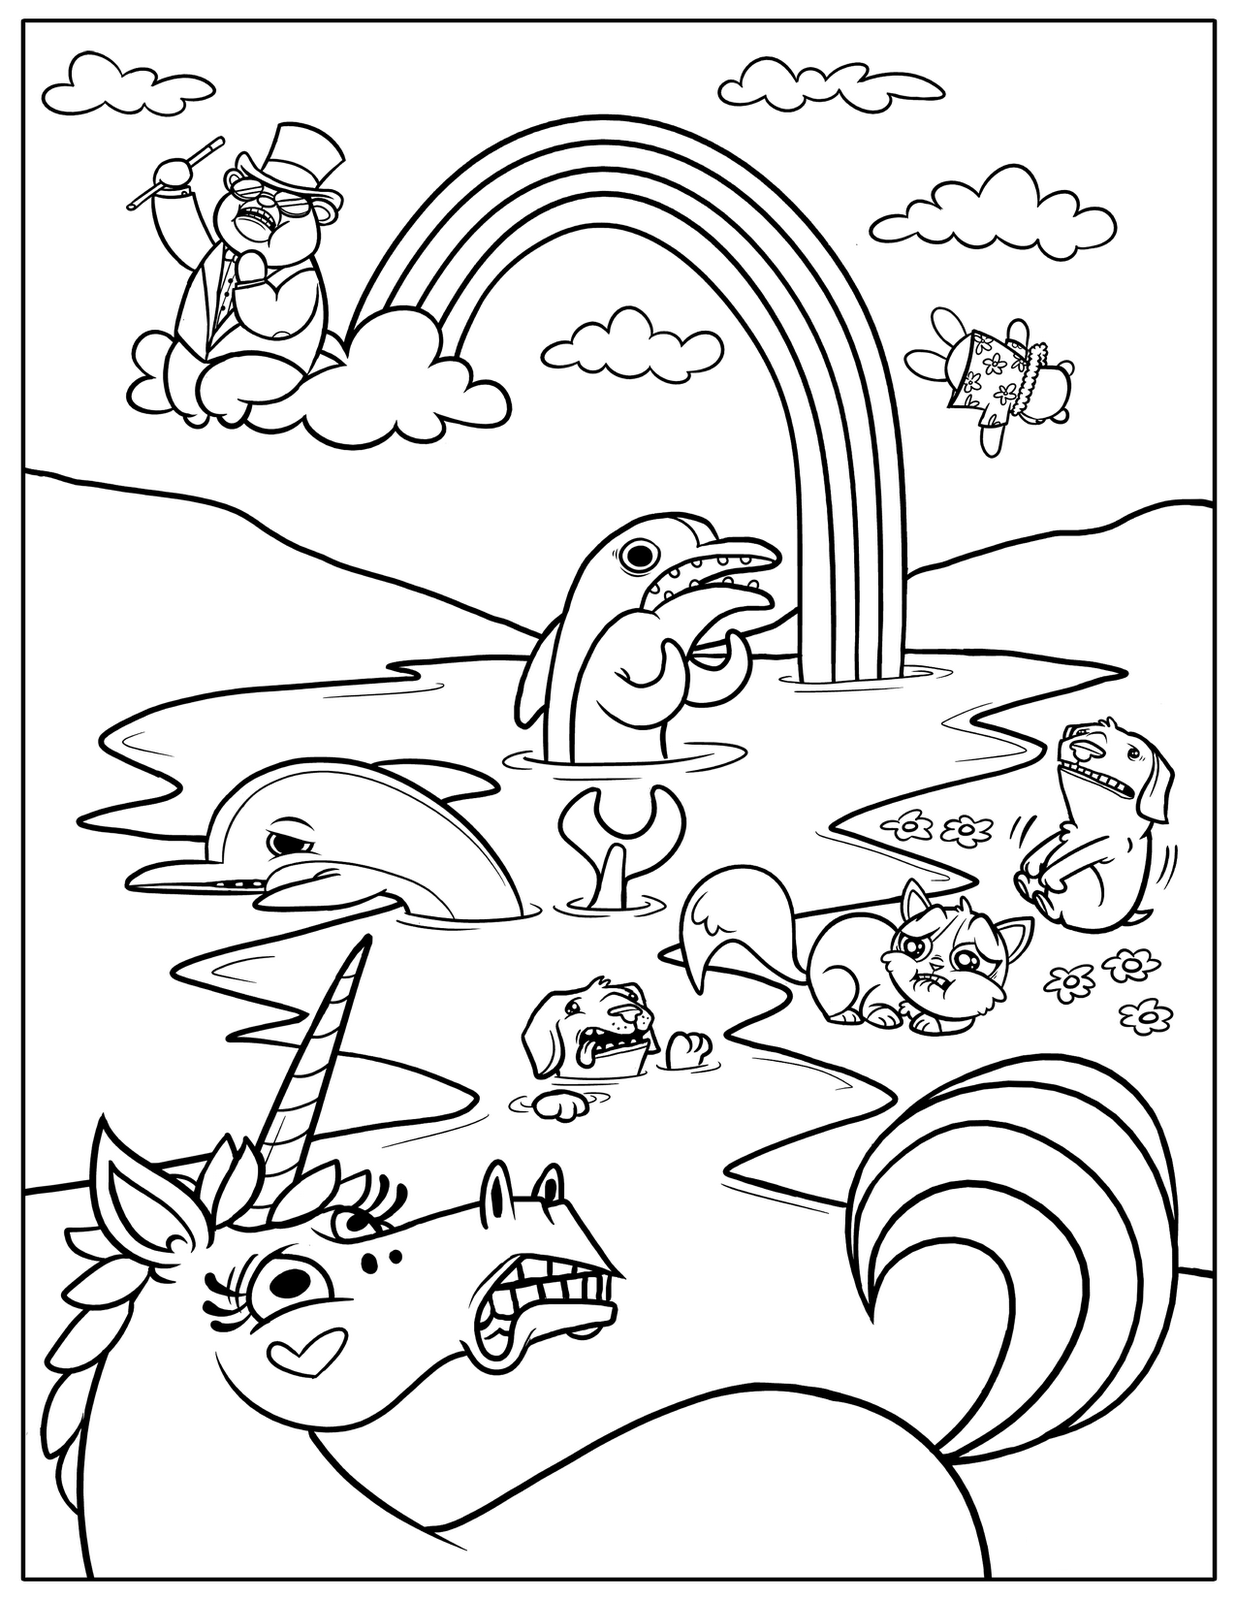 Coloring sheet for toddlers - Rainbow Coloring Pages Kids Printable